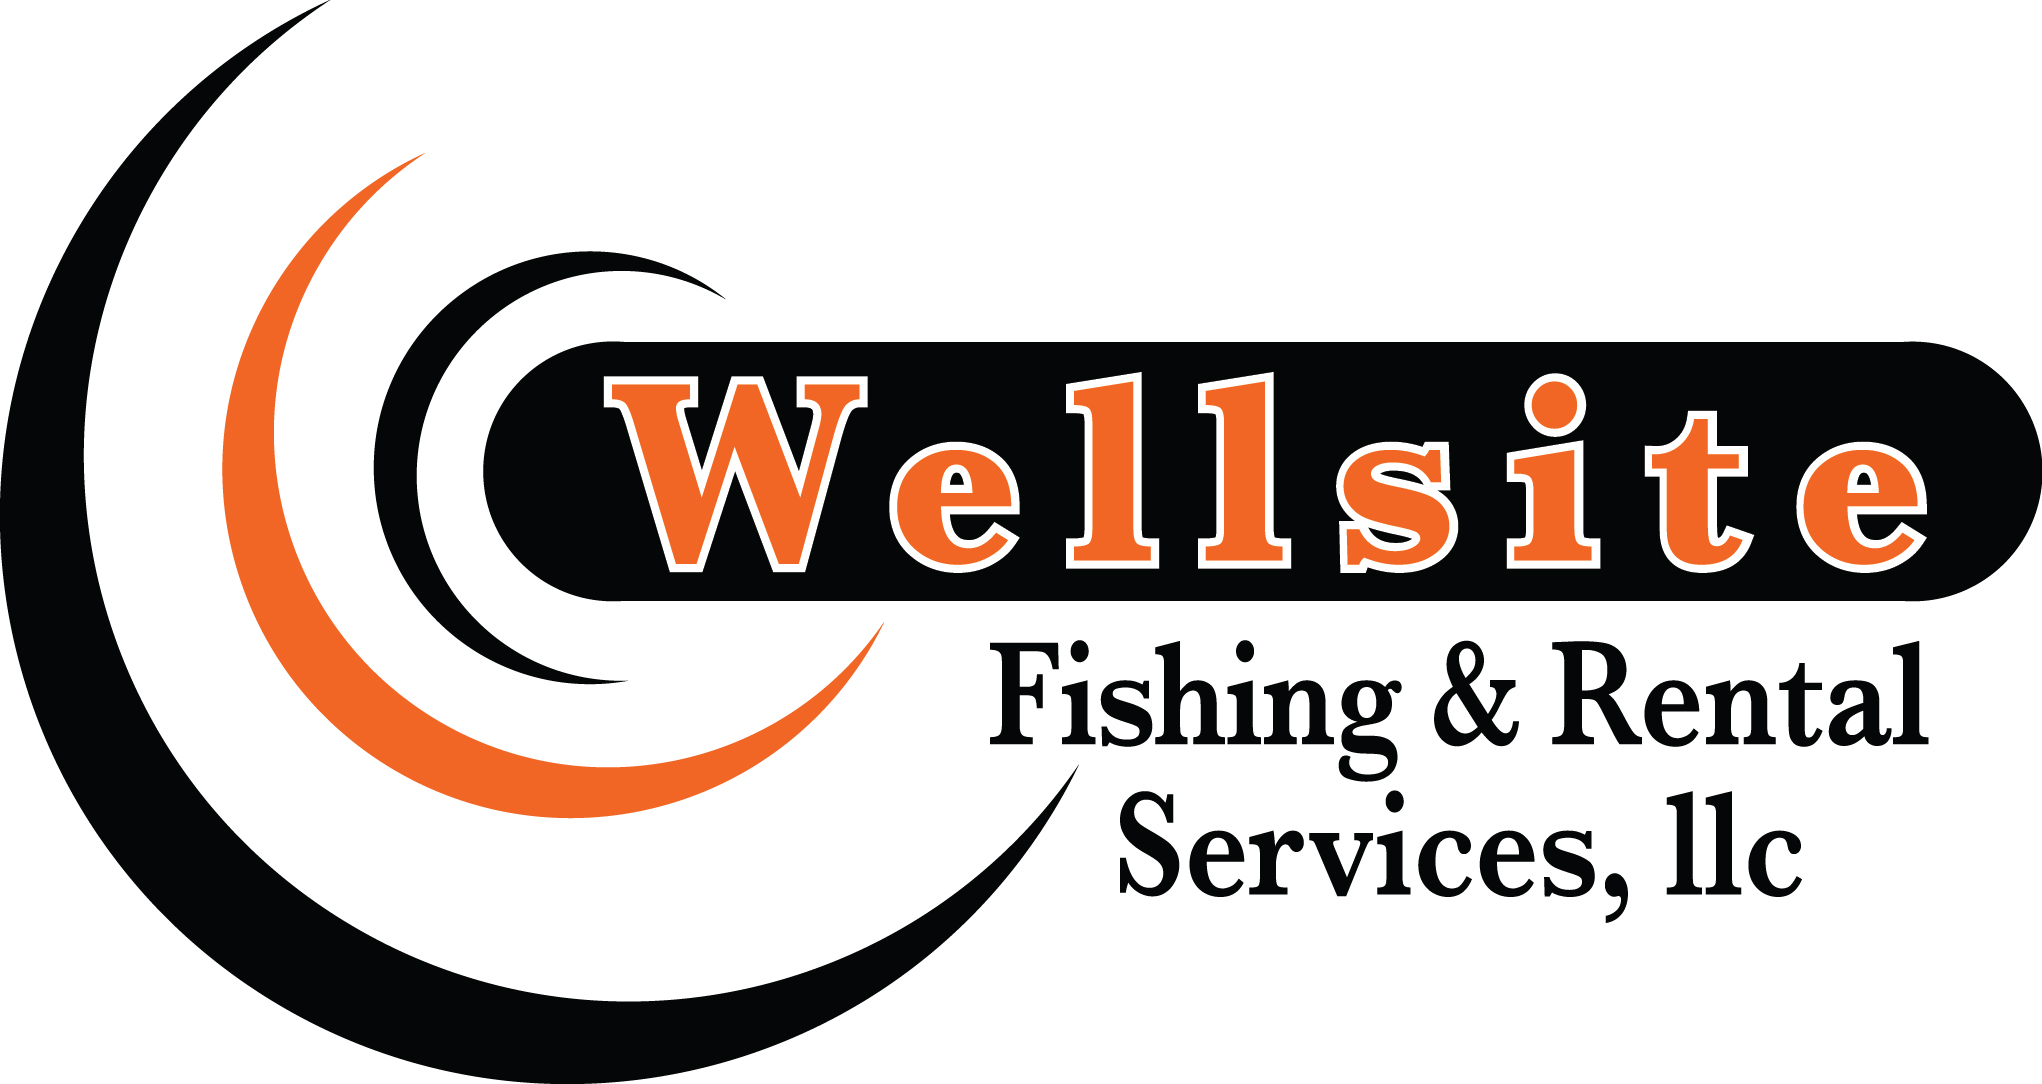 Wellsite Fishing & Rental Services